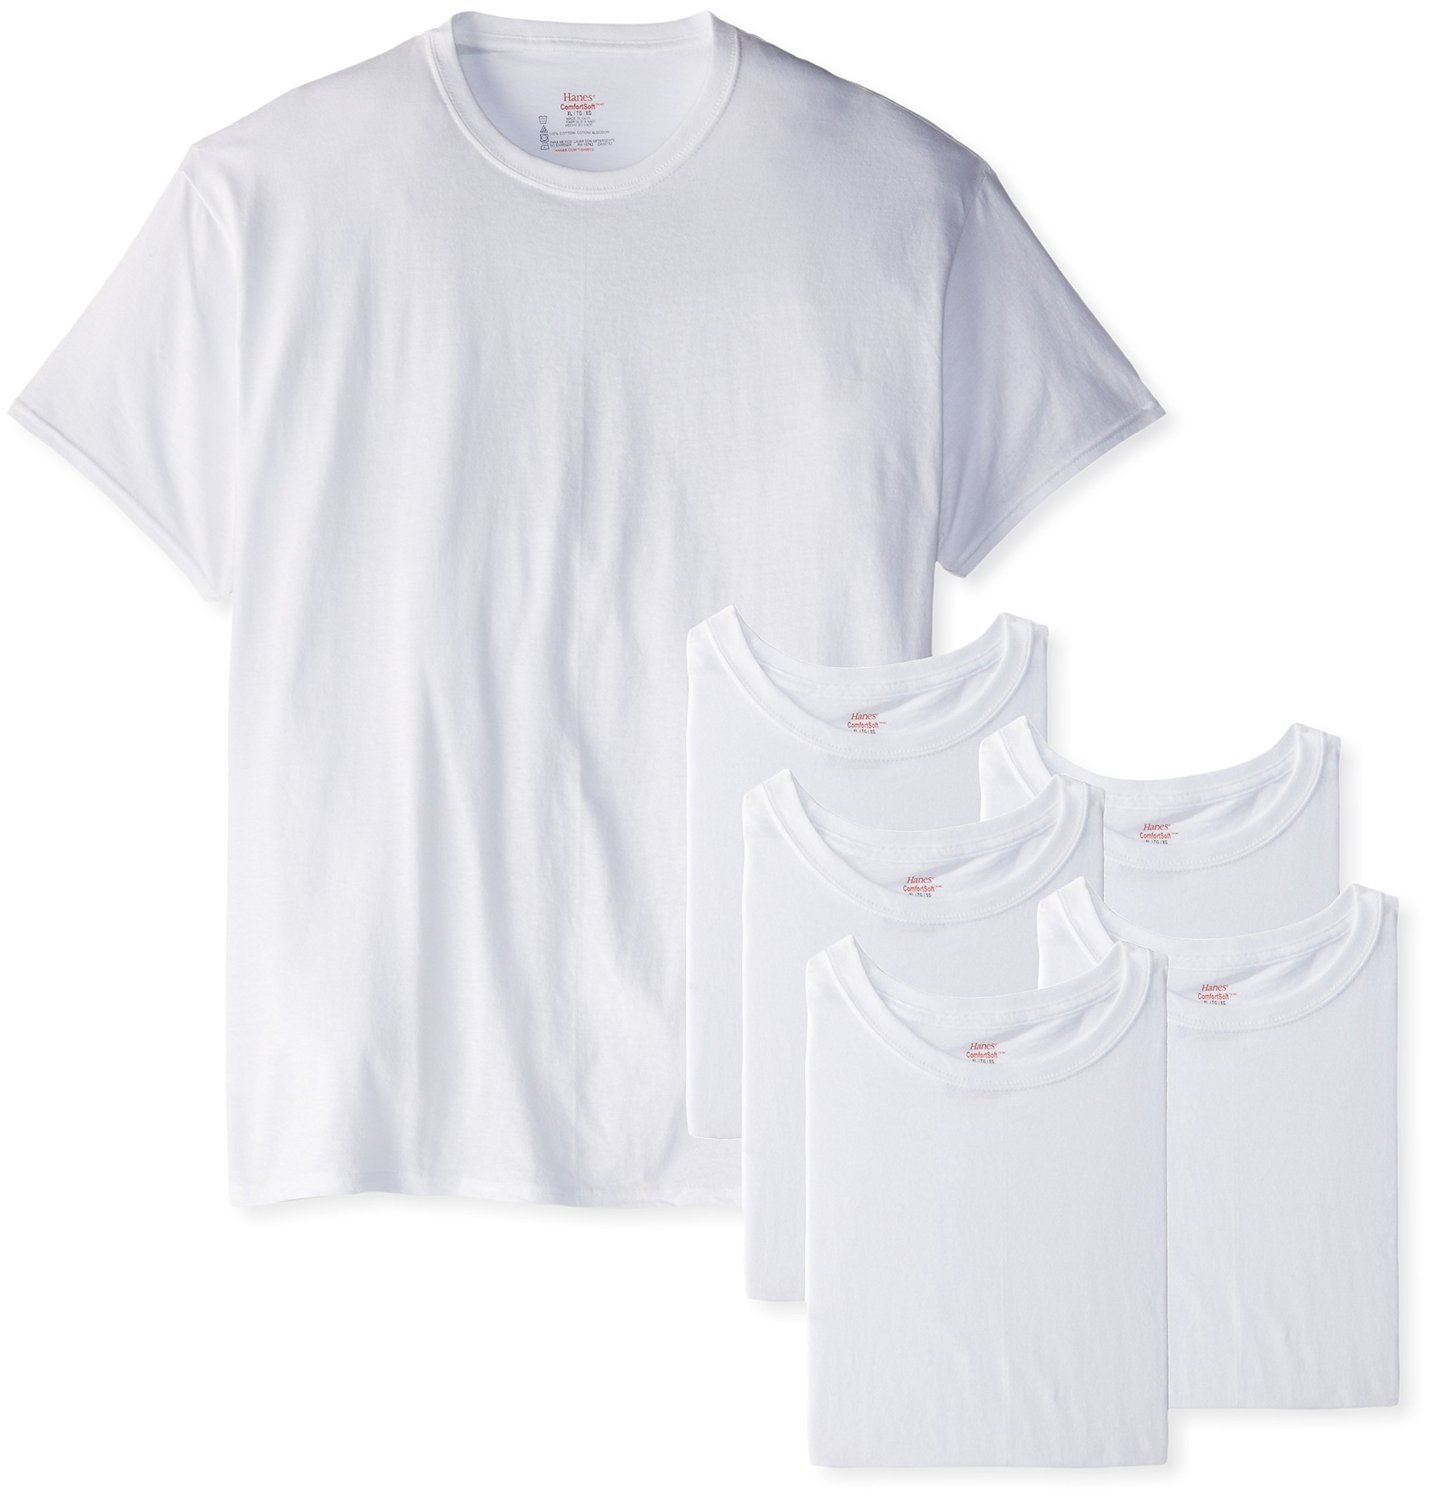 Hanes Men's Classics 6 Pack Crew Neck Tee (4X-Large Tall Man, White) by Hanes